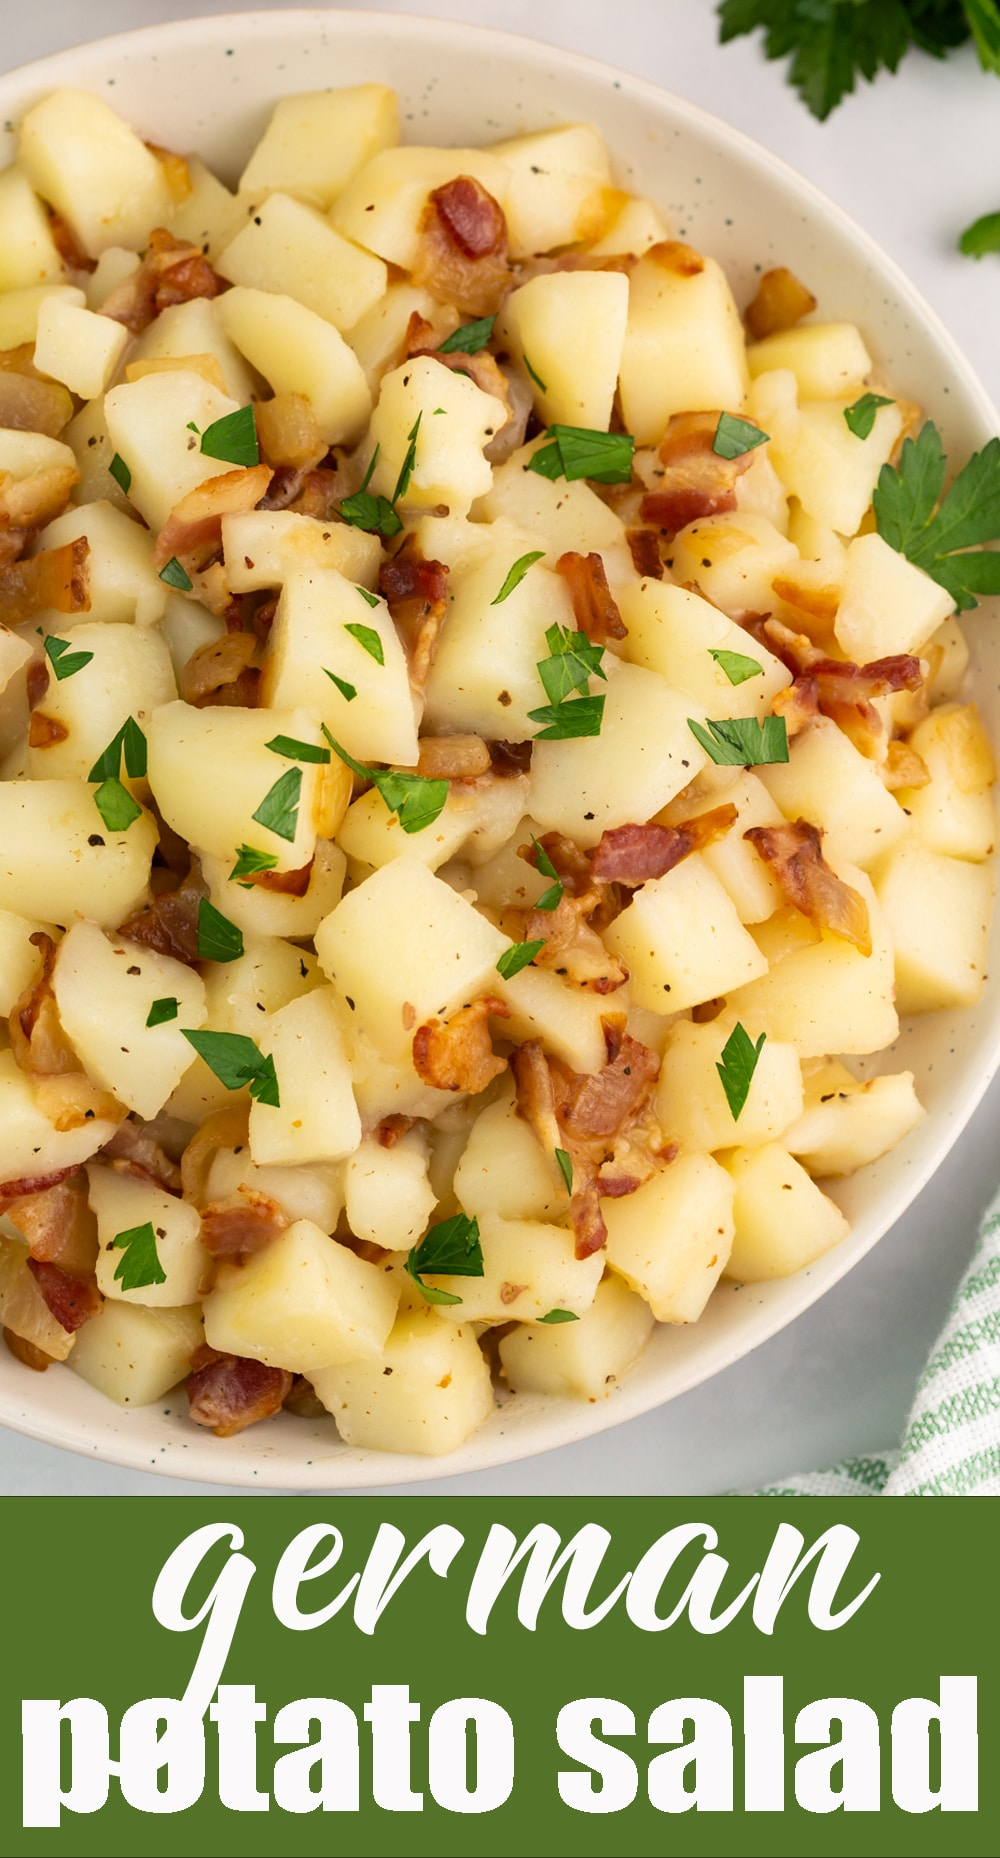 Bacon, apple cider vinegar, onion and sugar give this German potato salad a kick! Traditionally served warm, this potato side dish is salty and sweet. via @tastesoflizzyt